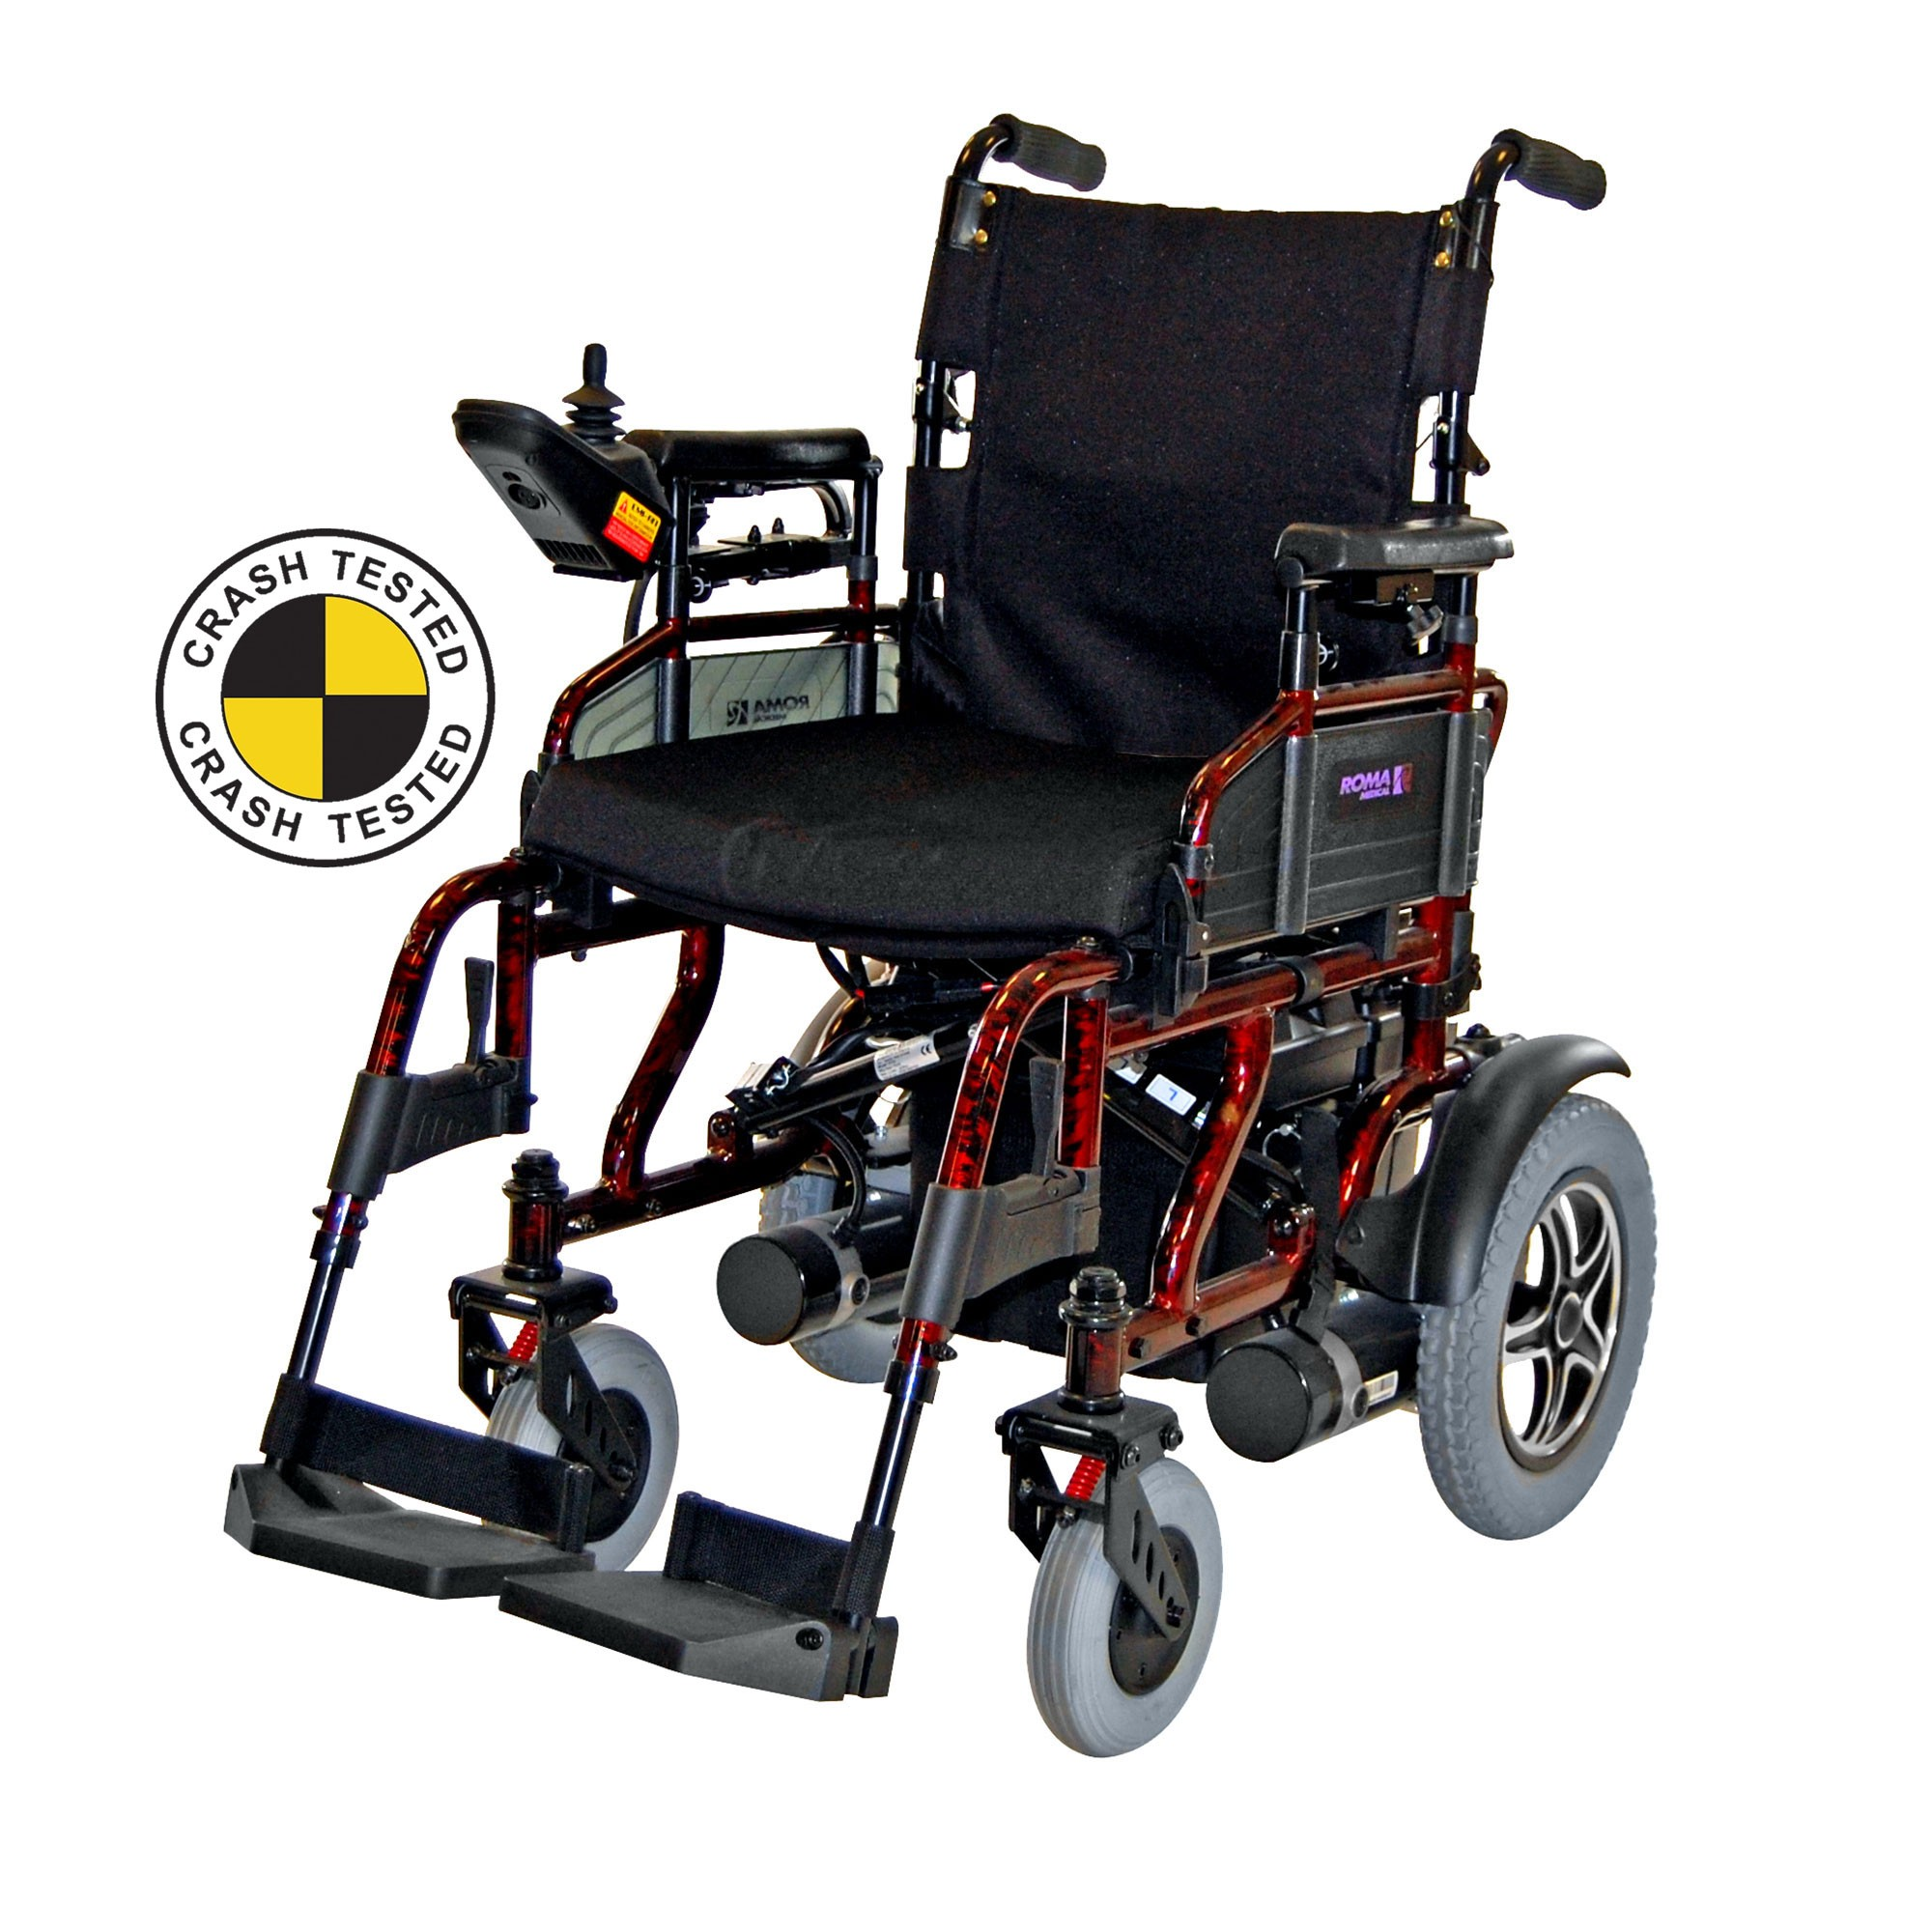 Electric Wheel Chairs Sirocco Electric Wheelchair Delvered Next Day For Free